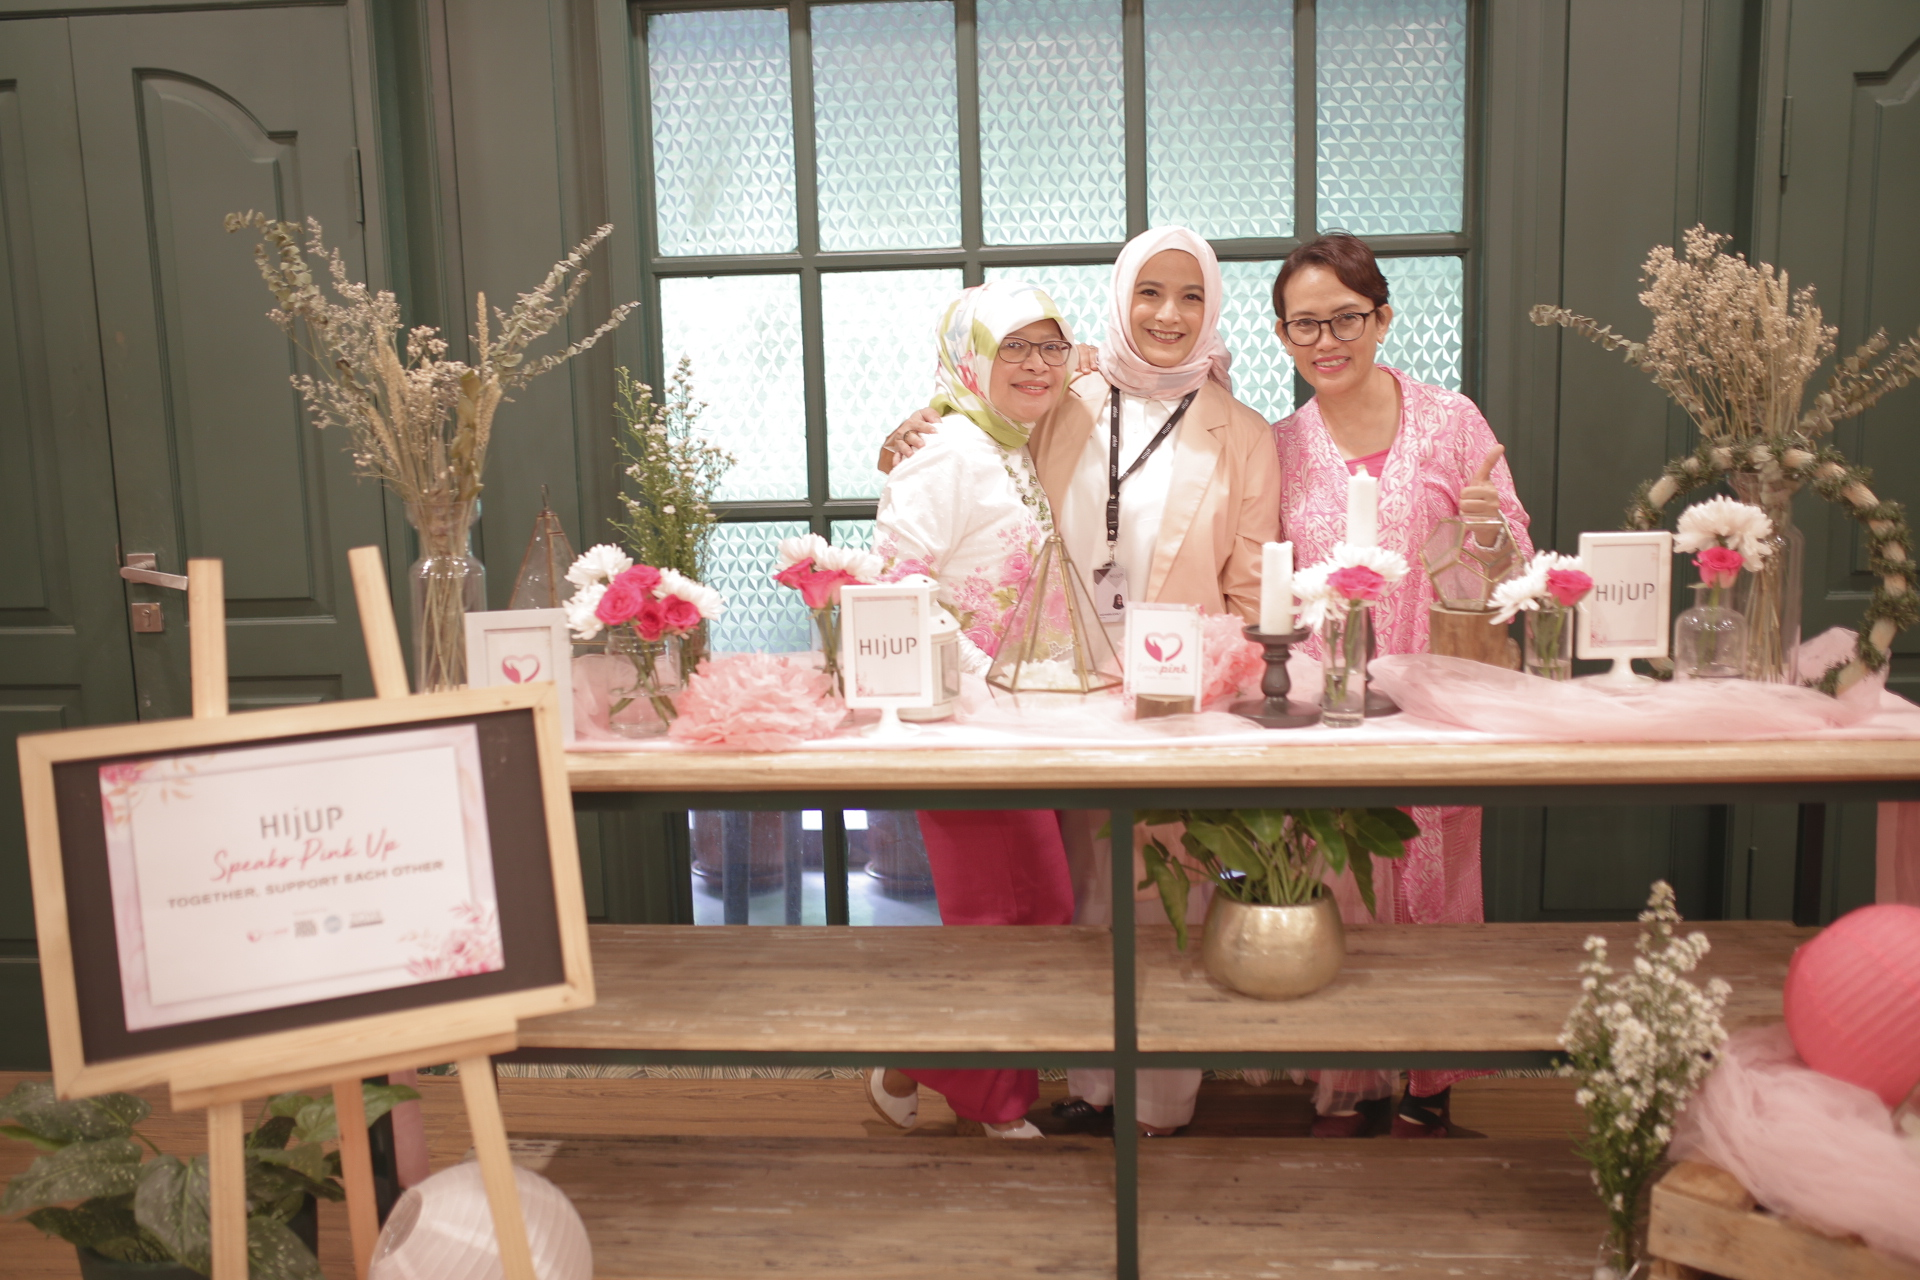 breast-cancer-awareness-event--1-